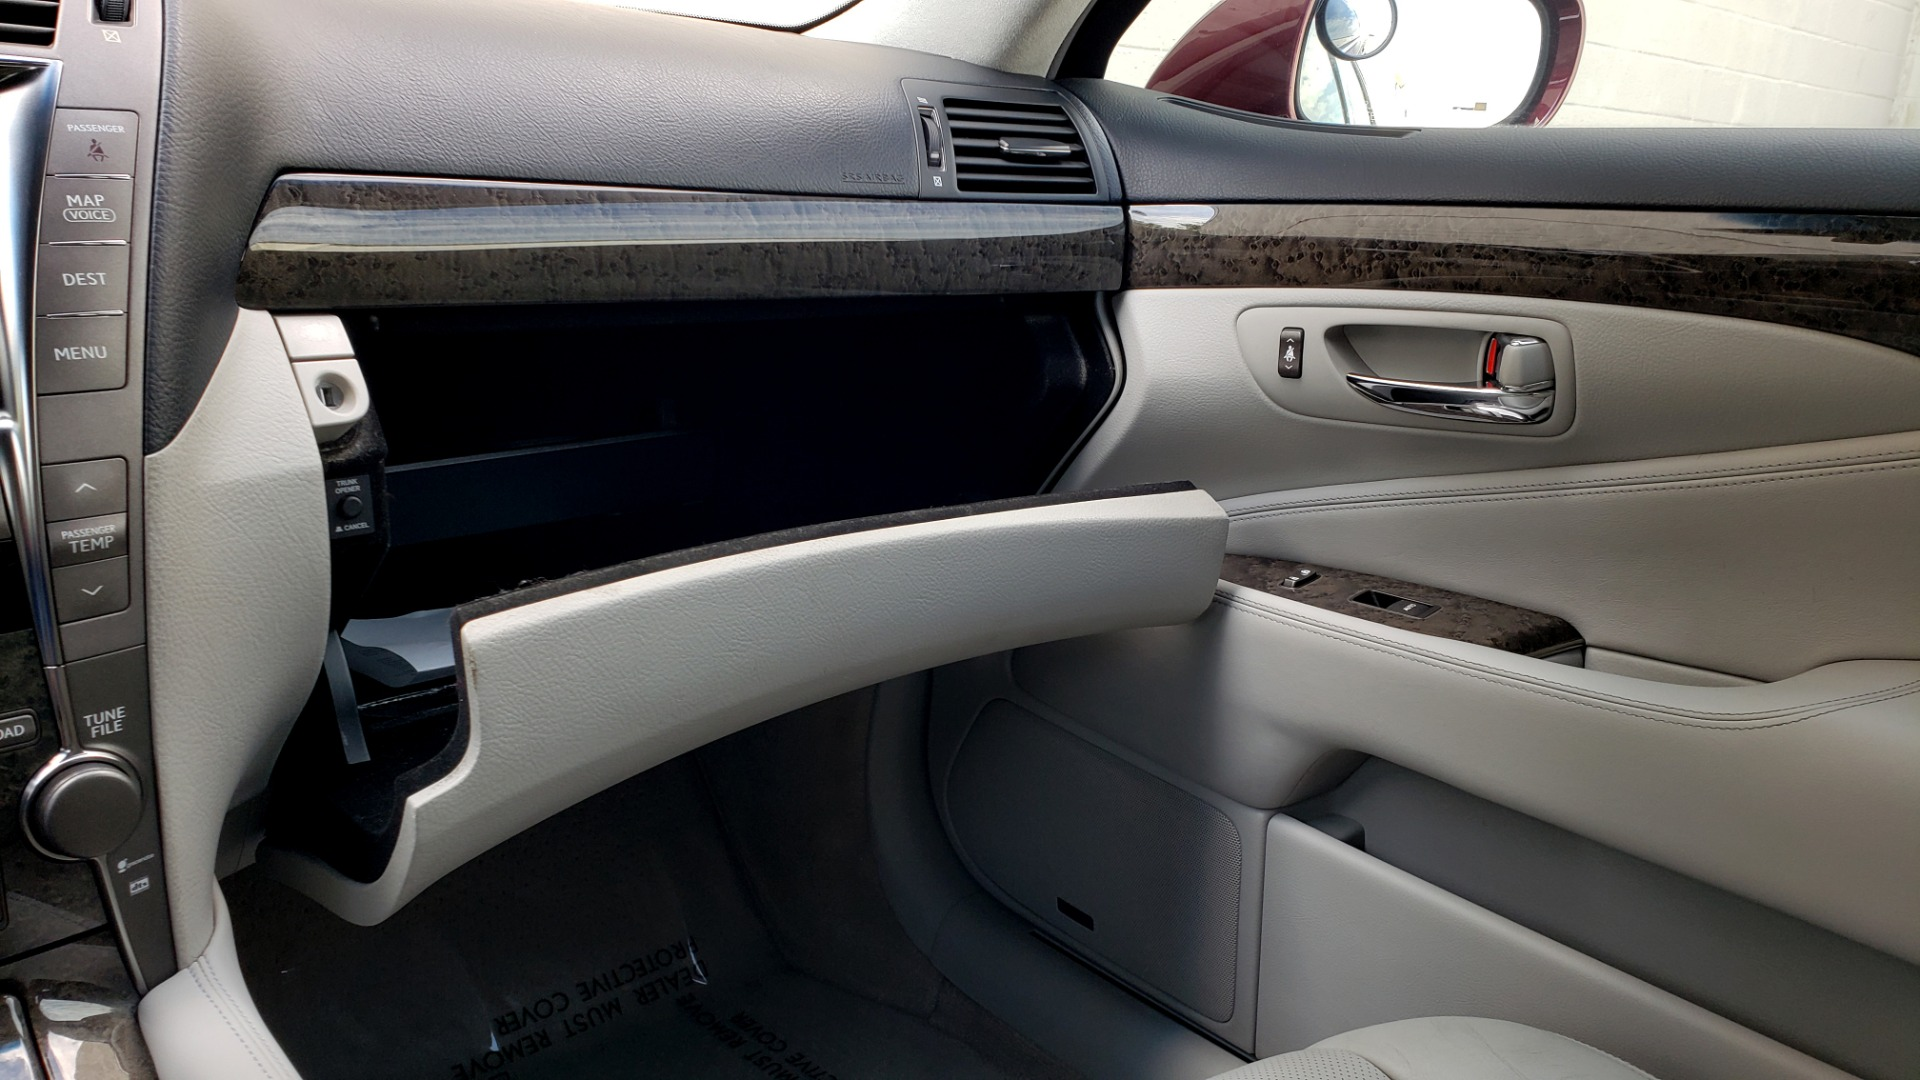 Used 2007 Lexus LS 460 LWB / LUX / NAV / SUNROOF / MARK LEVINSON SND / AIR SUSP for sale Sold at Formula Imports in Charlotte NC 28227 50